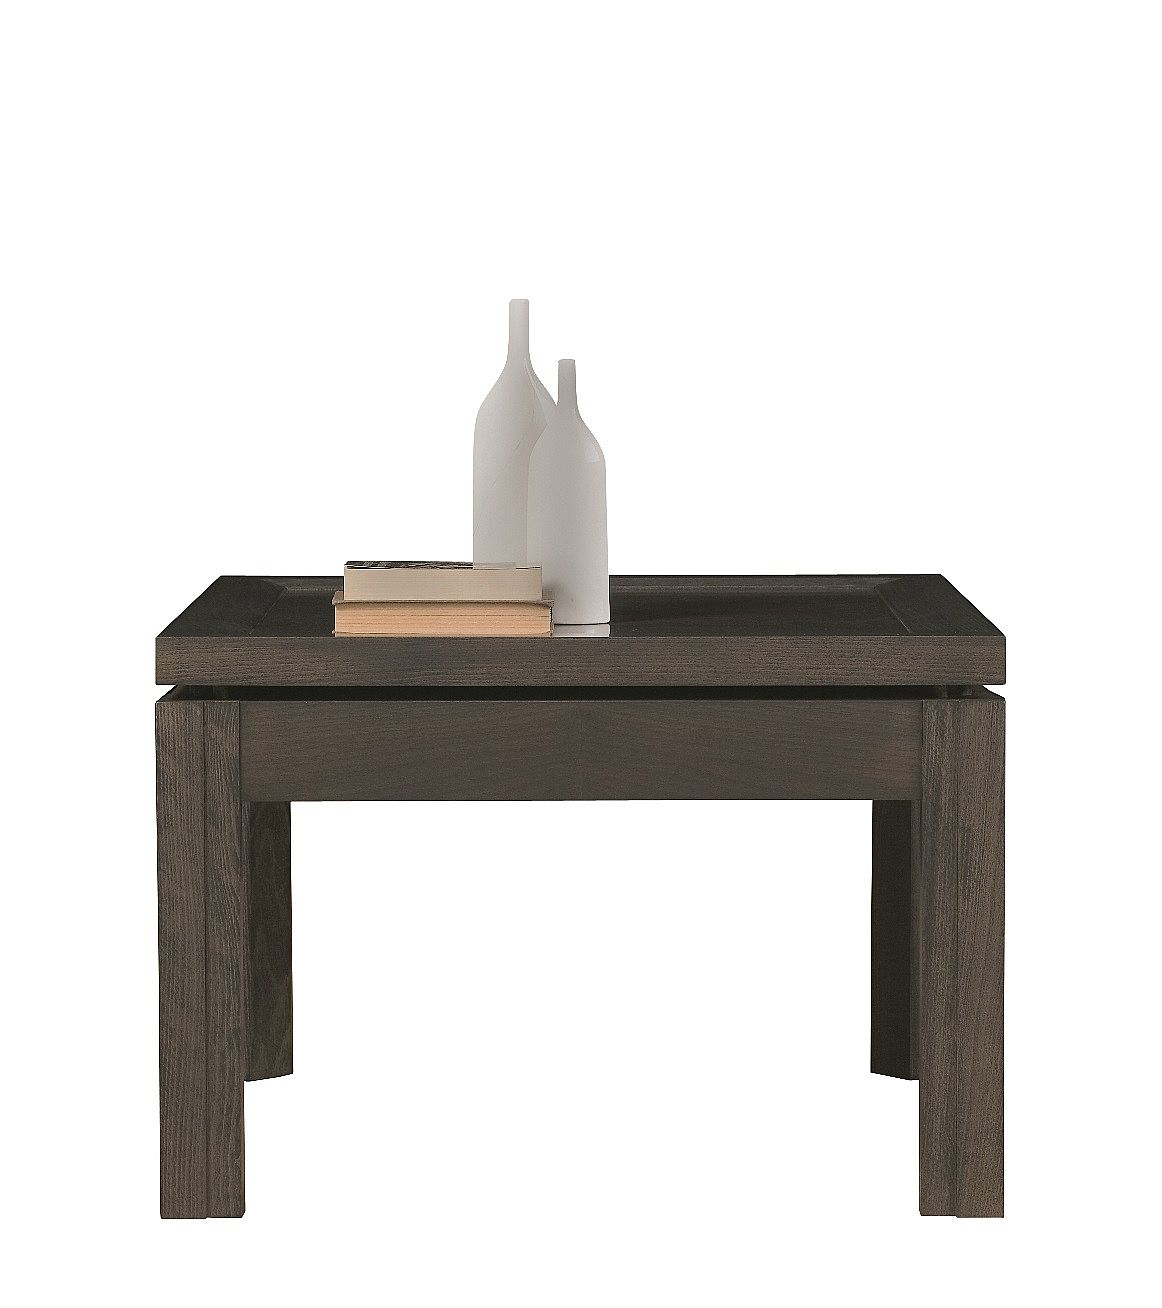 Formidable Two Drawers Coffee Tables Ebay Coffee Tables Melbourne Two Drawers Coffee Table Coffee Table houzz-03 Contemporary Coffee Tables